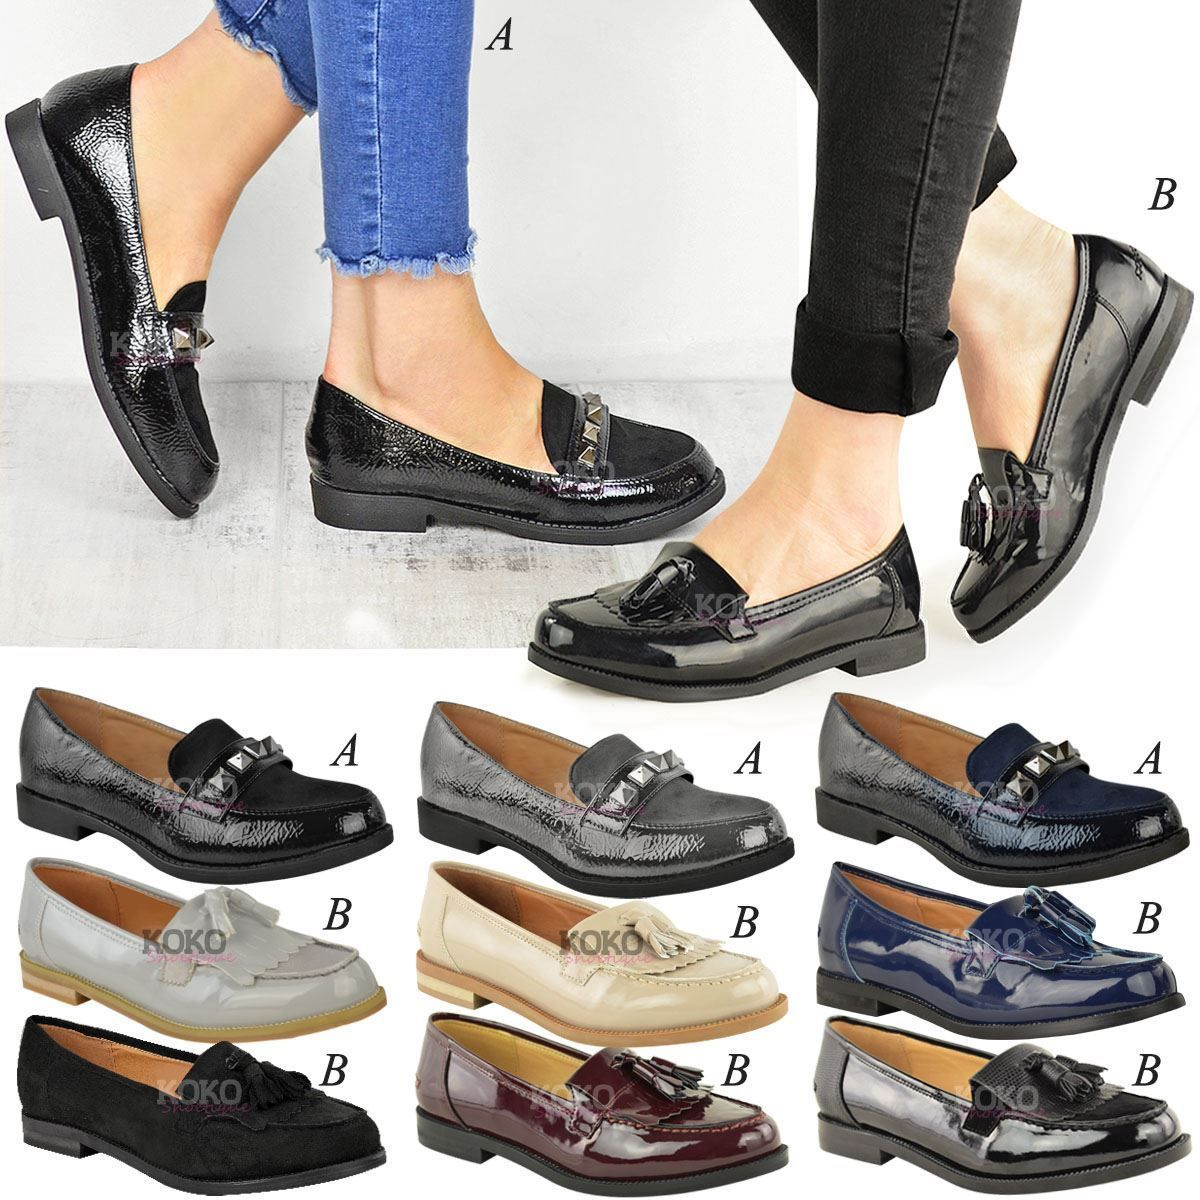 Women/'s Ladies Loafers Brogues Pumps Casual School Office Comfy Work Flat Boots